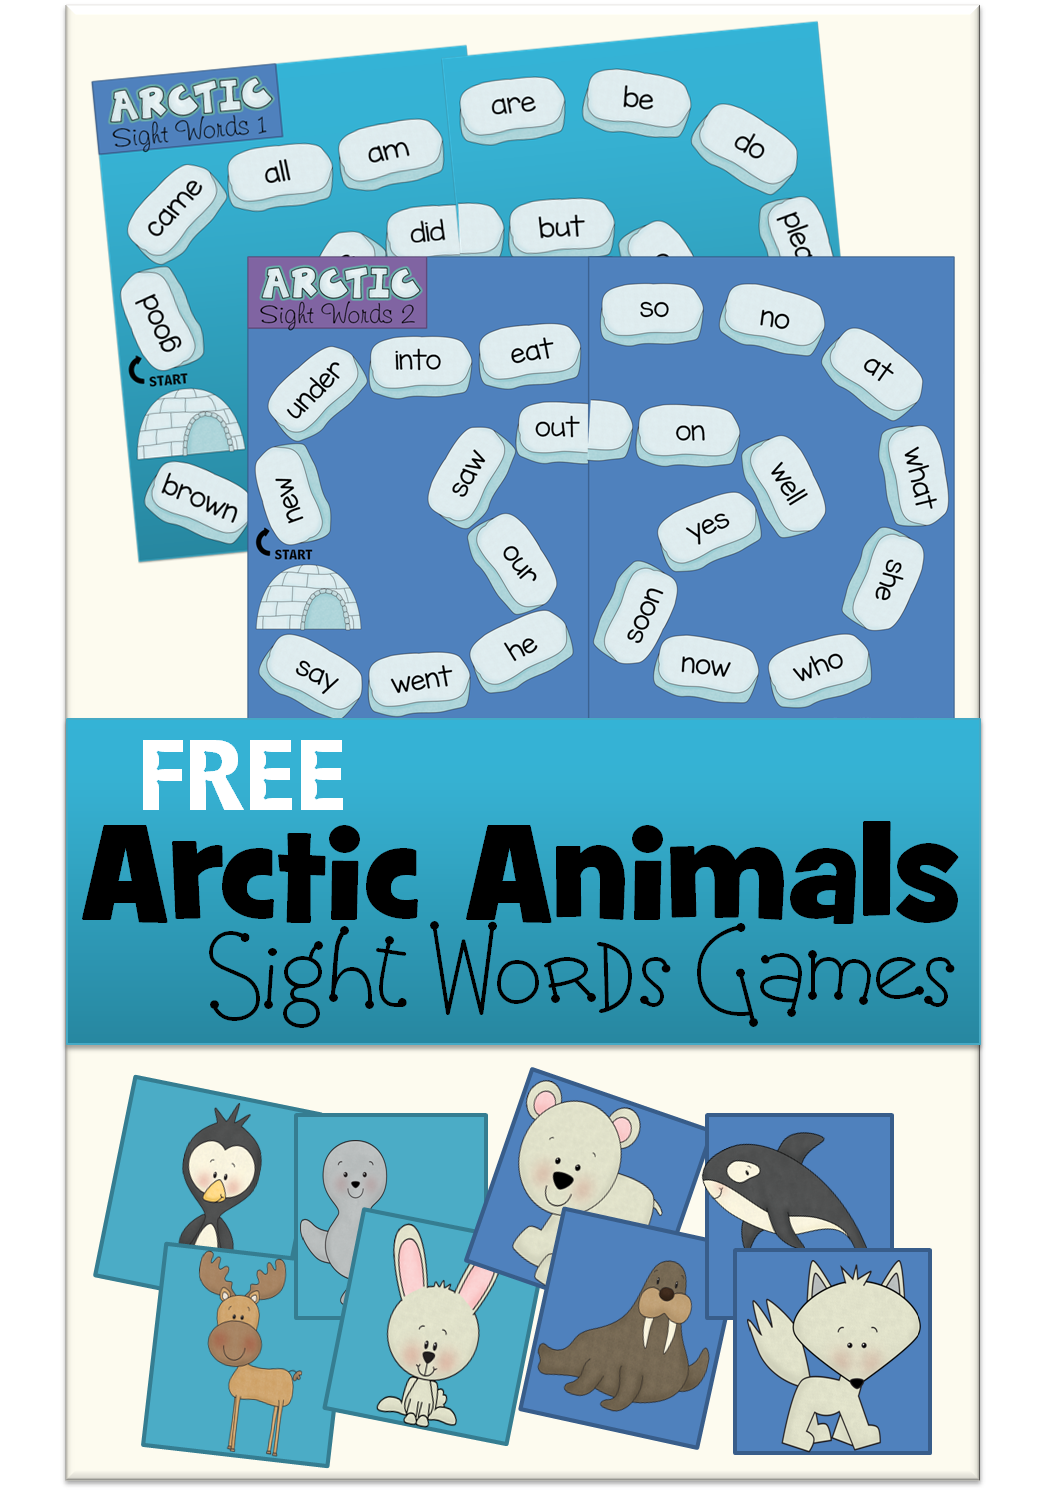 Arctic Animals Sight Words Game